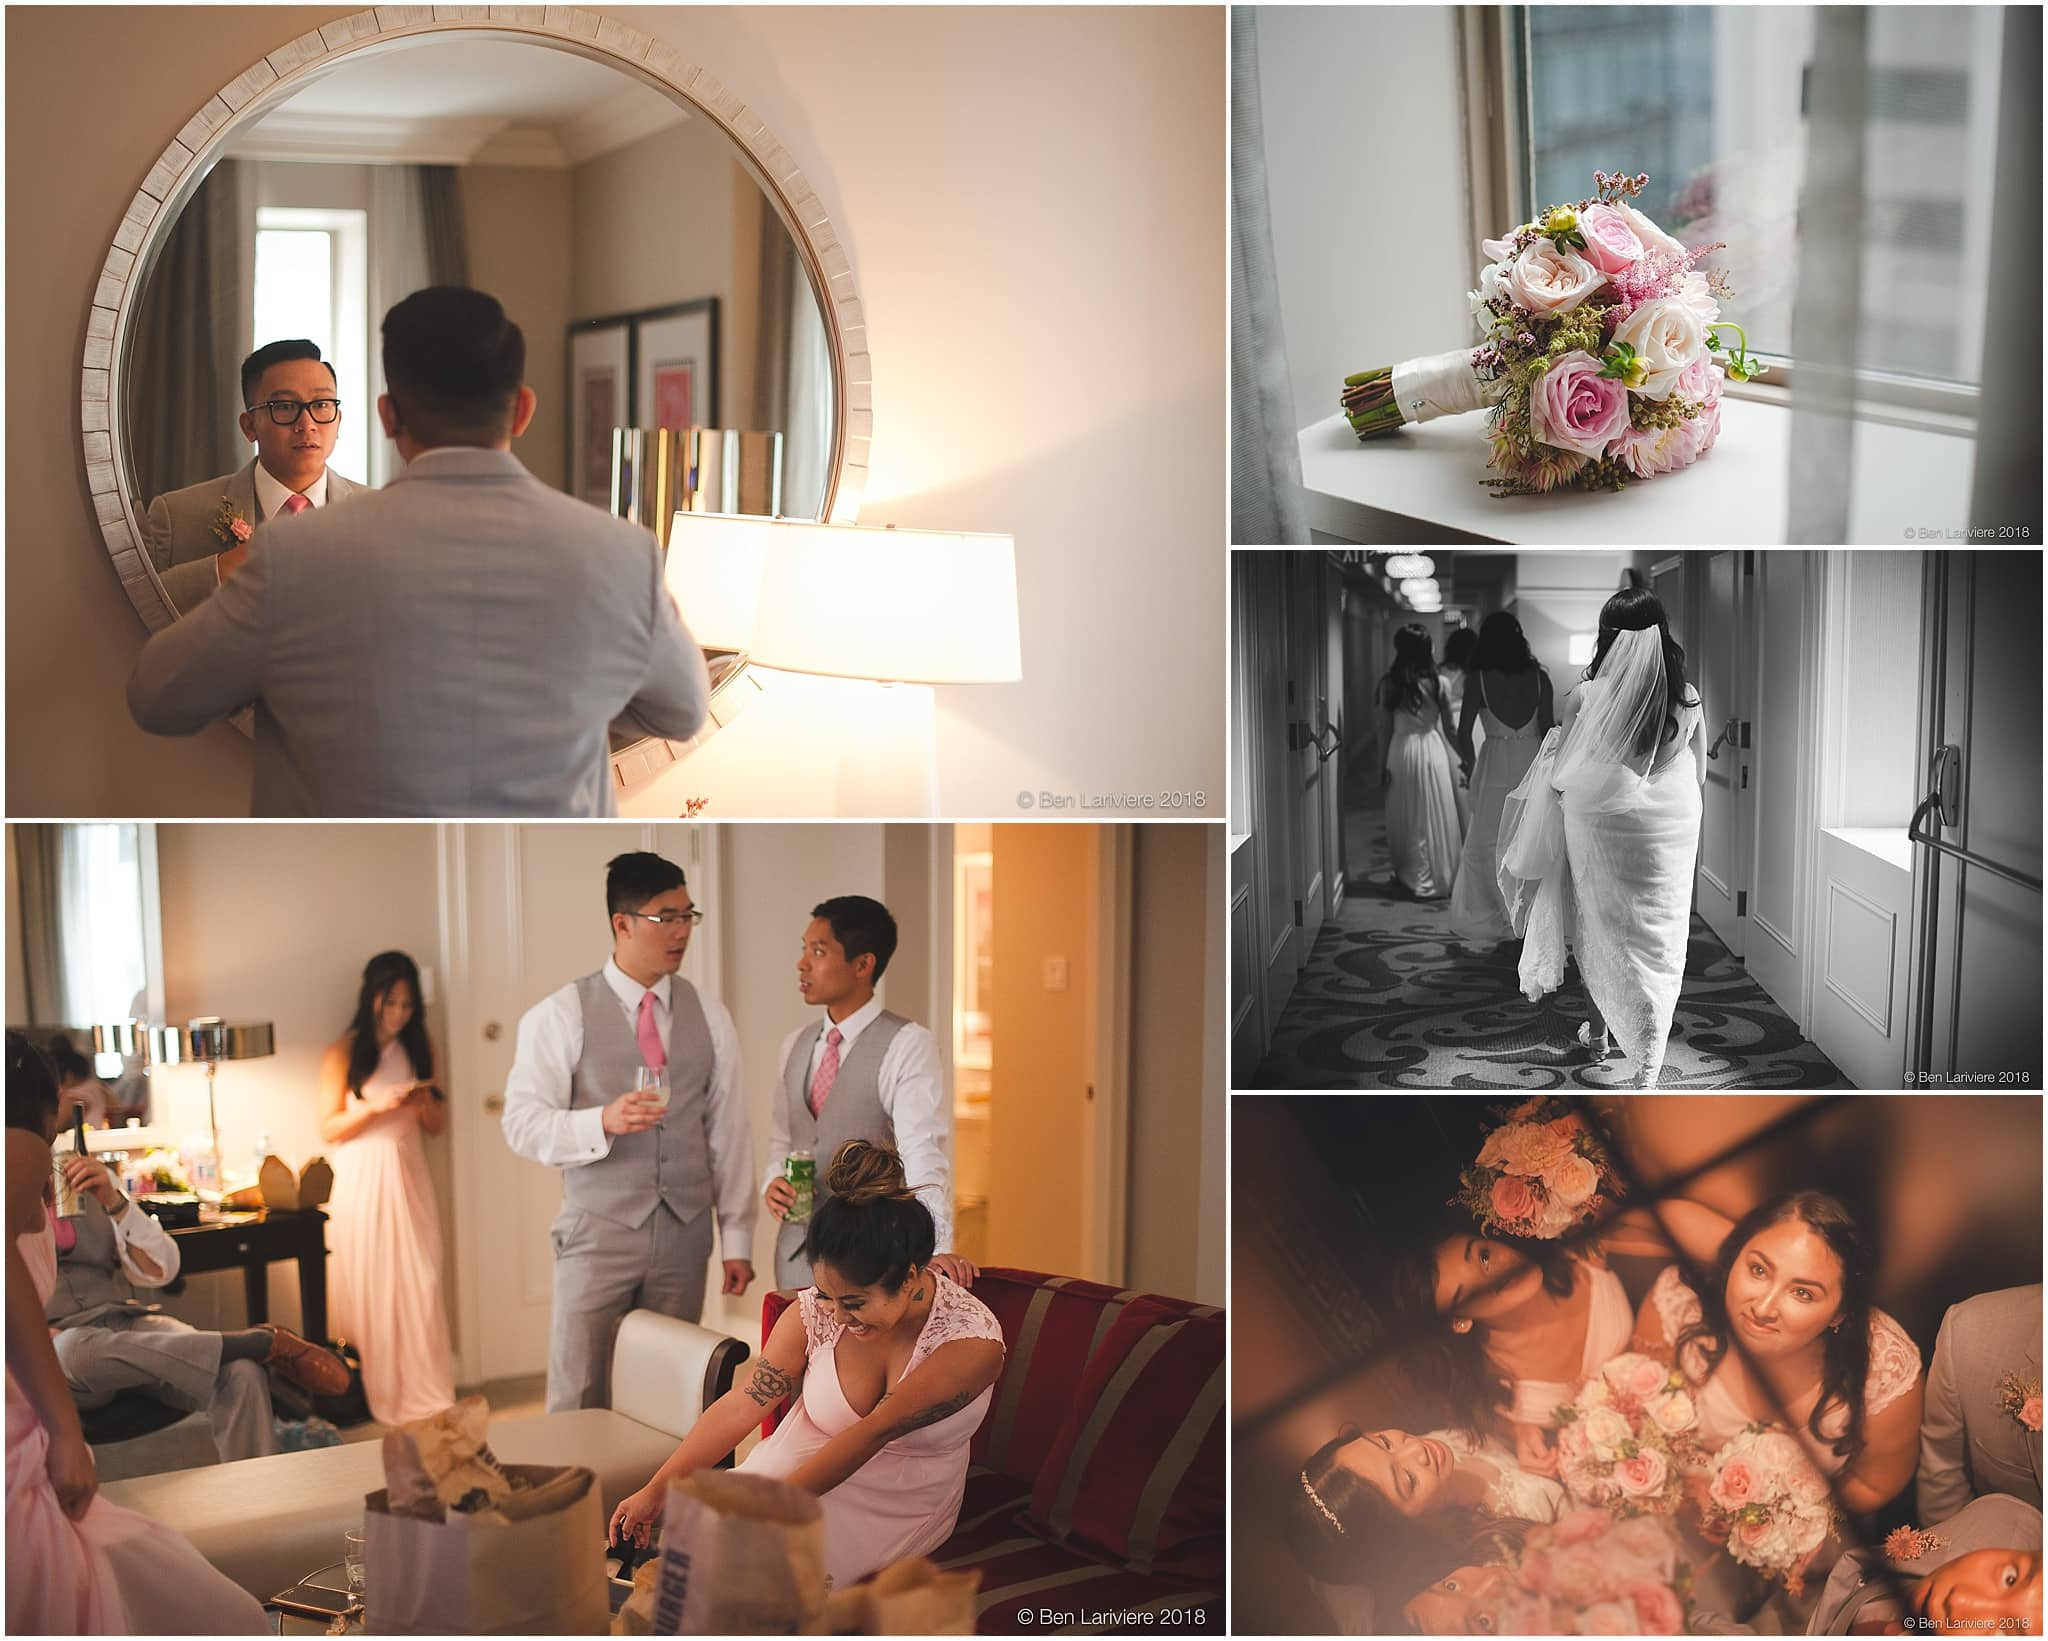 wedding party getting ready in hotel room, bouquet, elevator mirror celing